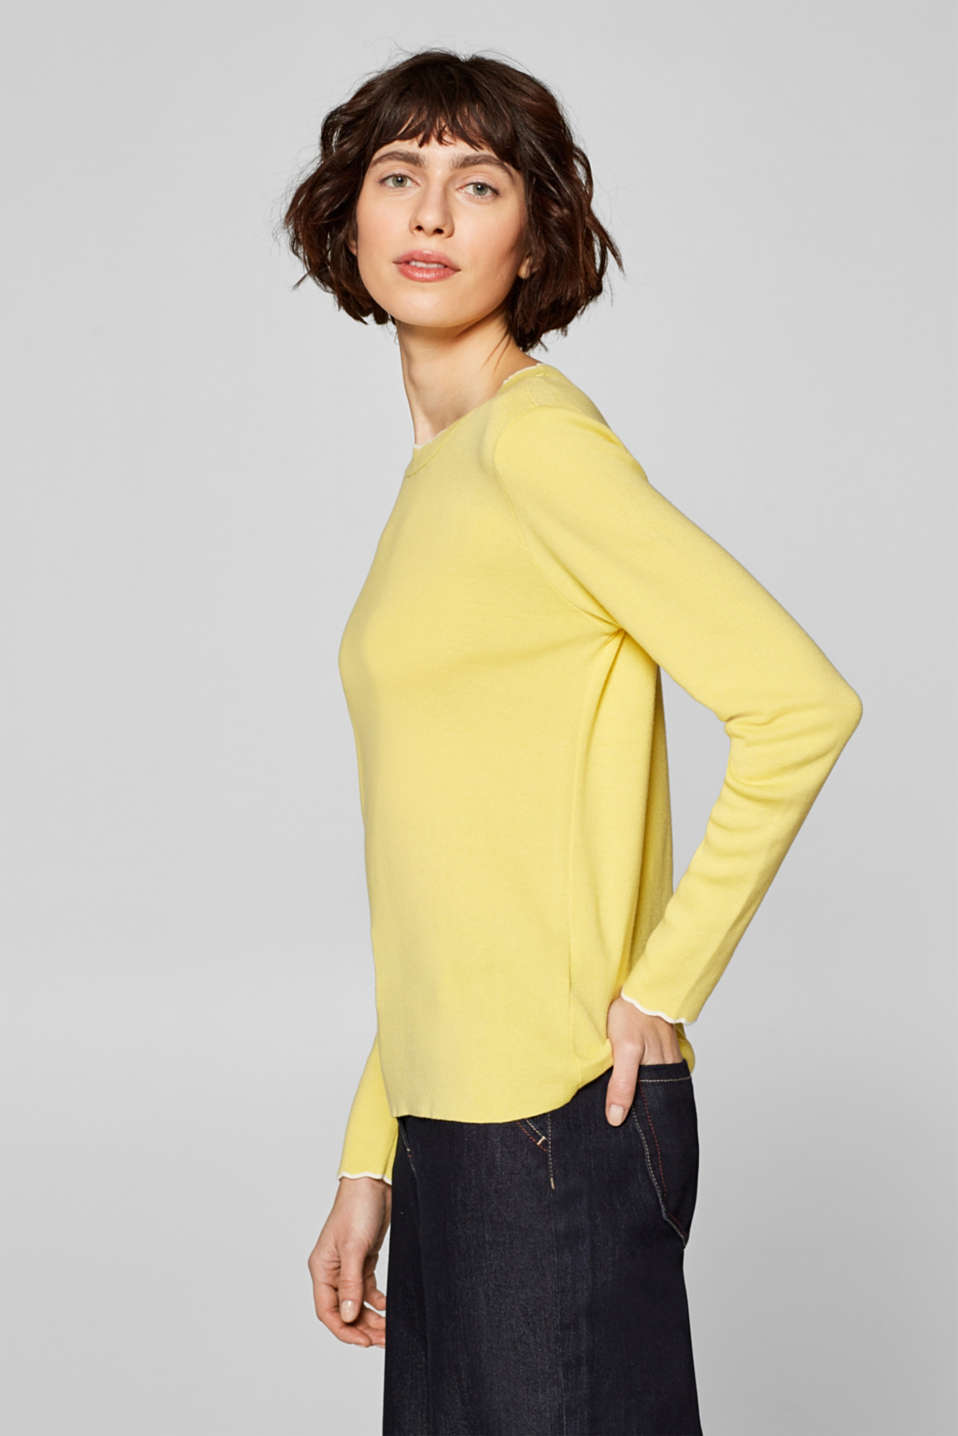 Esprit - Pull-over en fine maille à bords ondulés